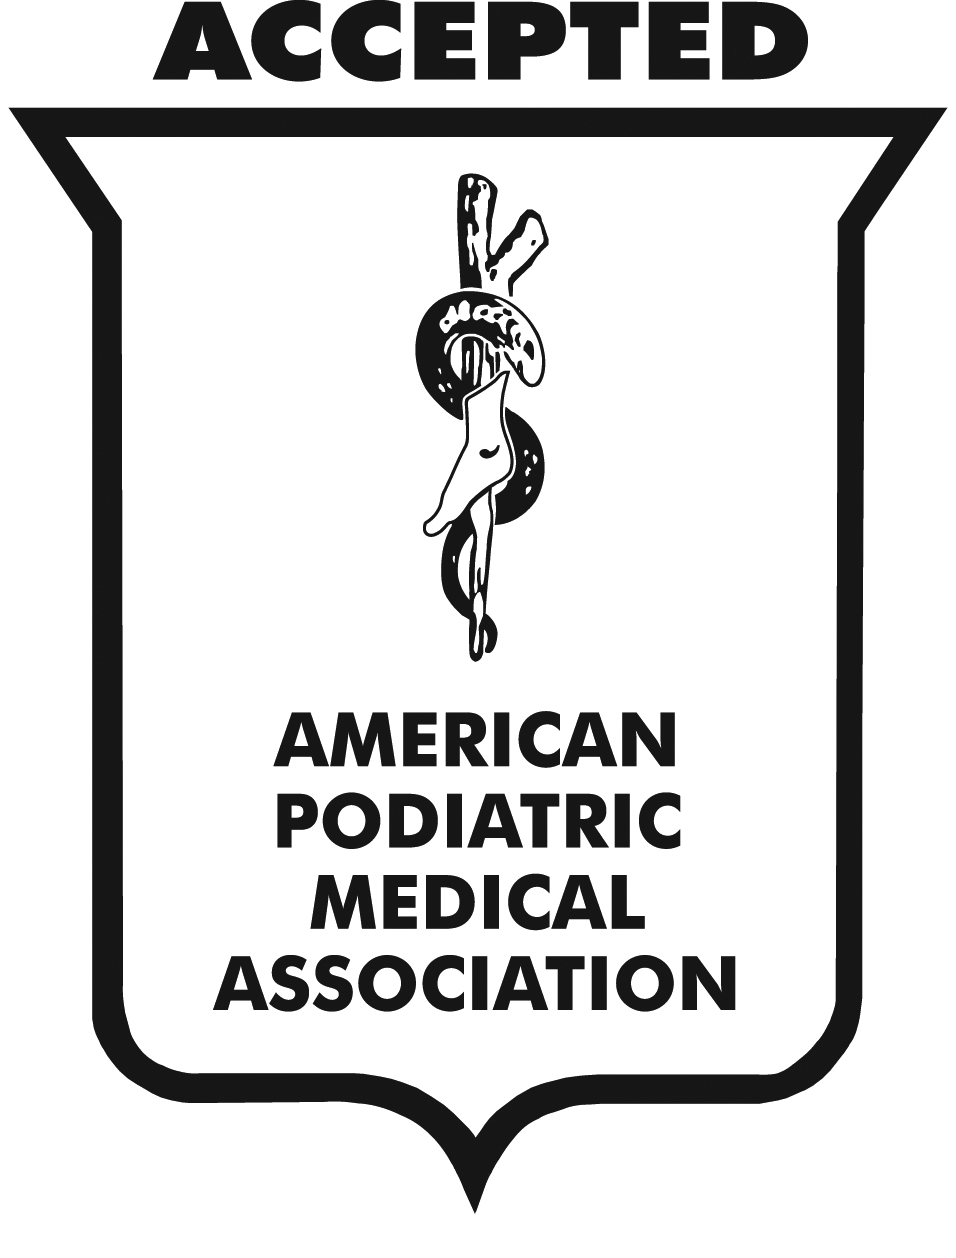 The American Podiatric Medical Association Seal of Acceptence